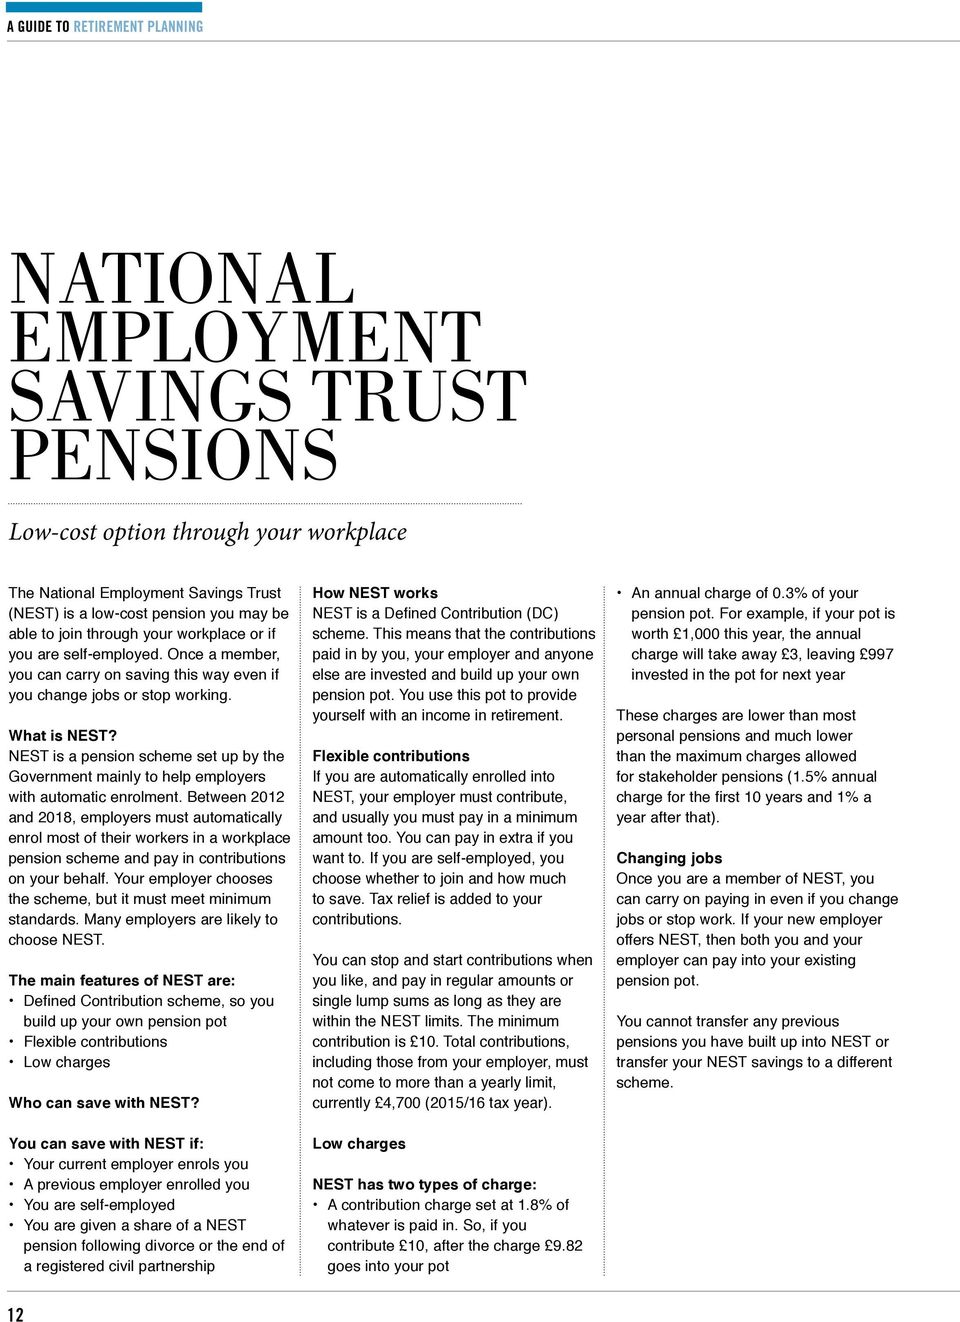 NEST is a pension scheme set up by the Government mainly to help employers with automatic enrolment.